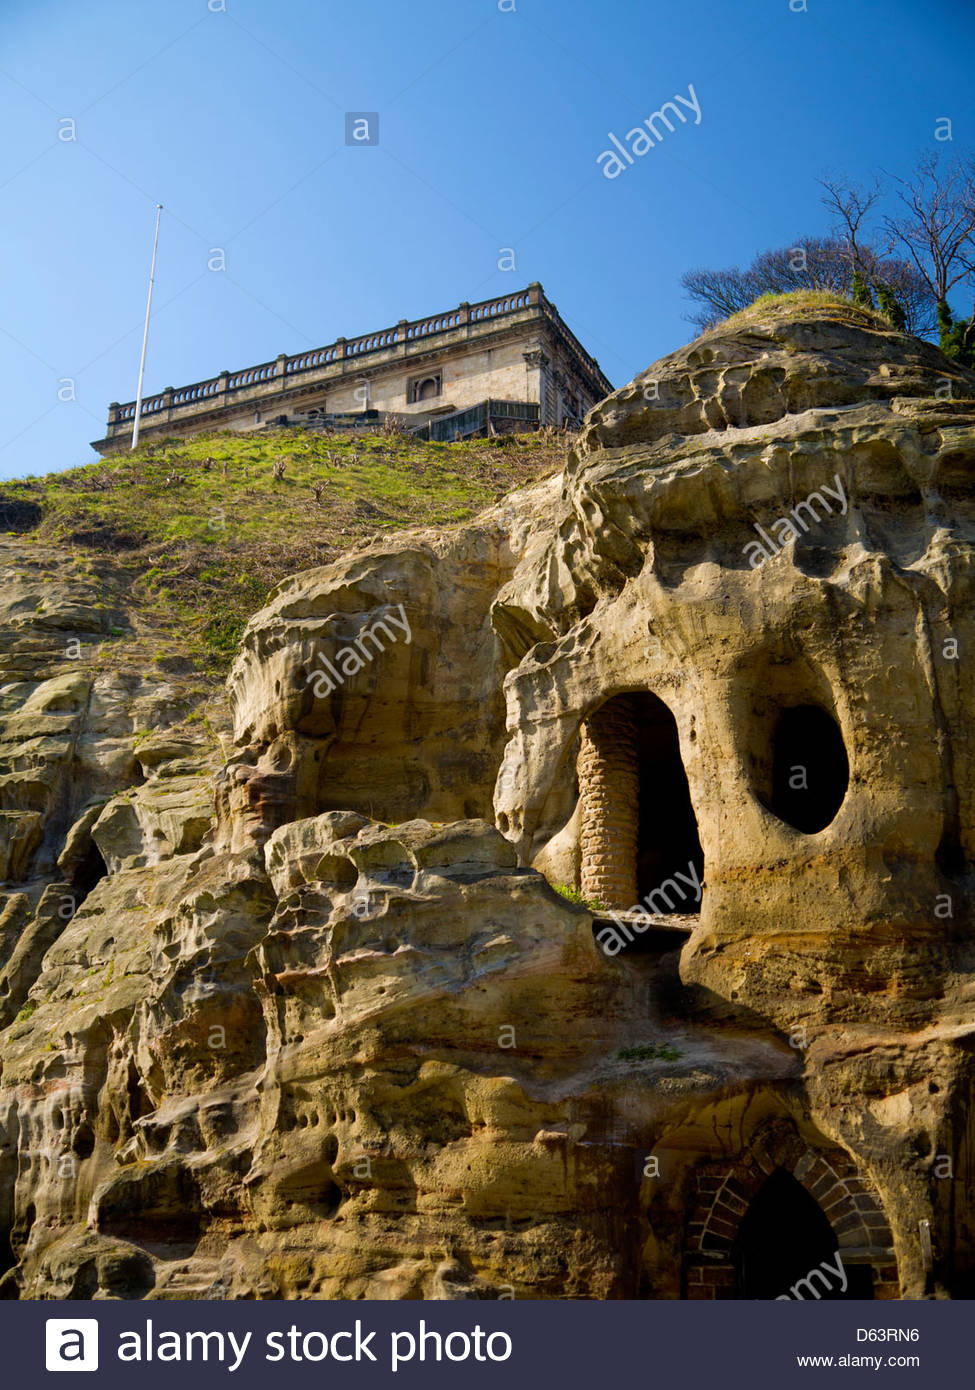 Nottingham Castle Above Sandstone Caves - Stock Image